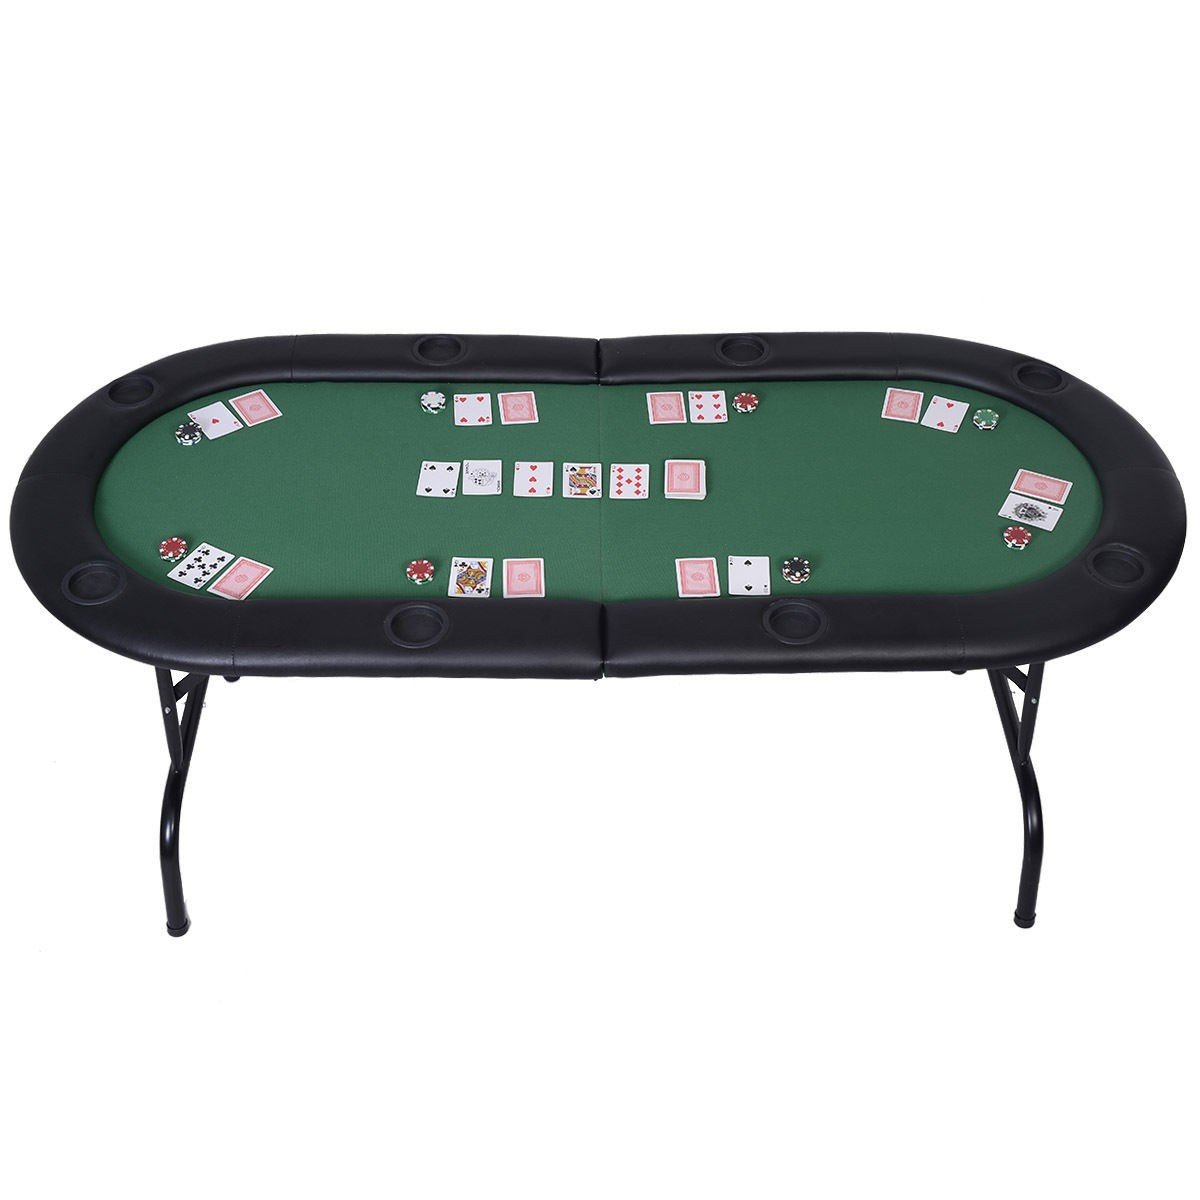 Foldable 8 Player Poker Table Casino Texas Hold'em Play Table Holdem Card Game by Apontus